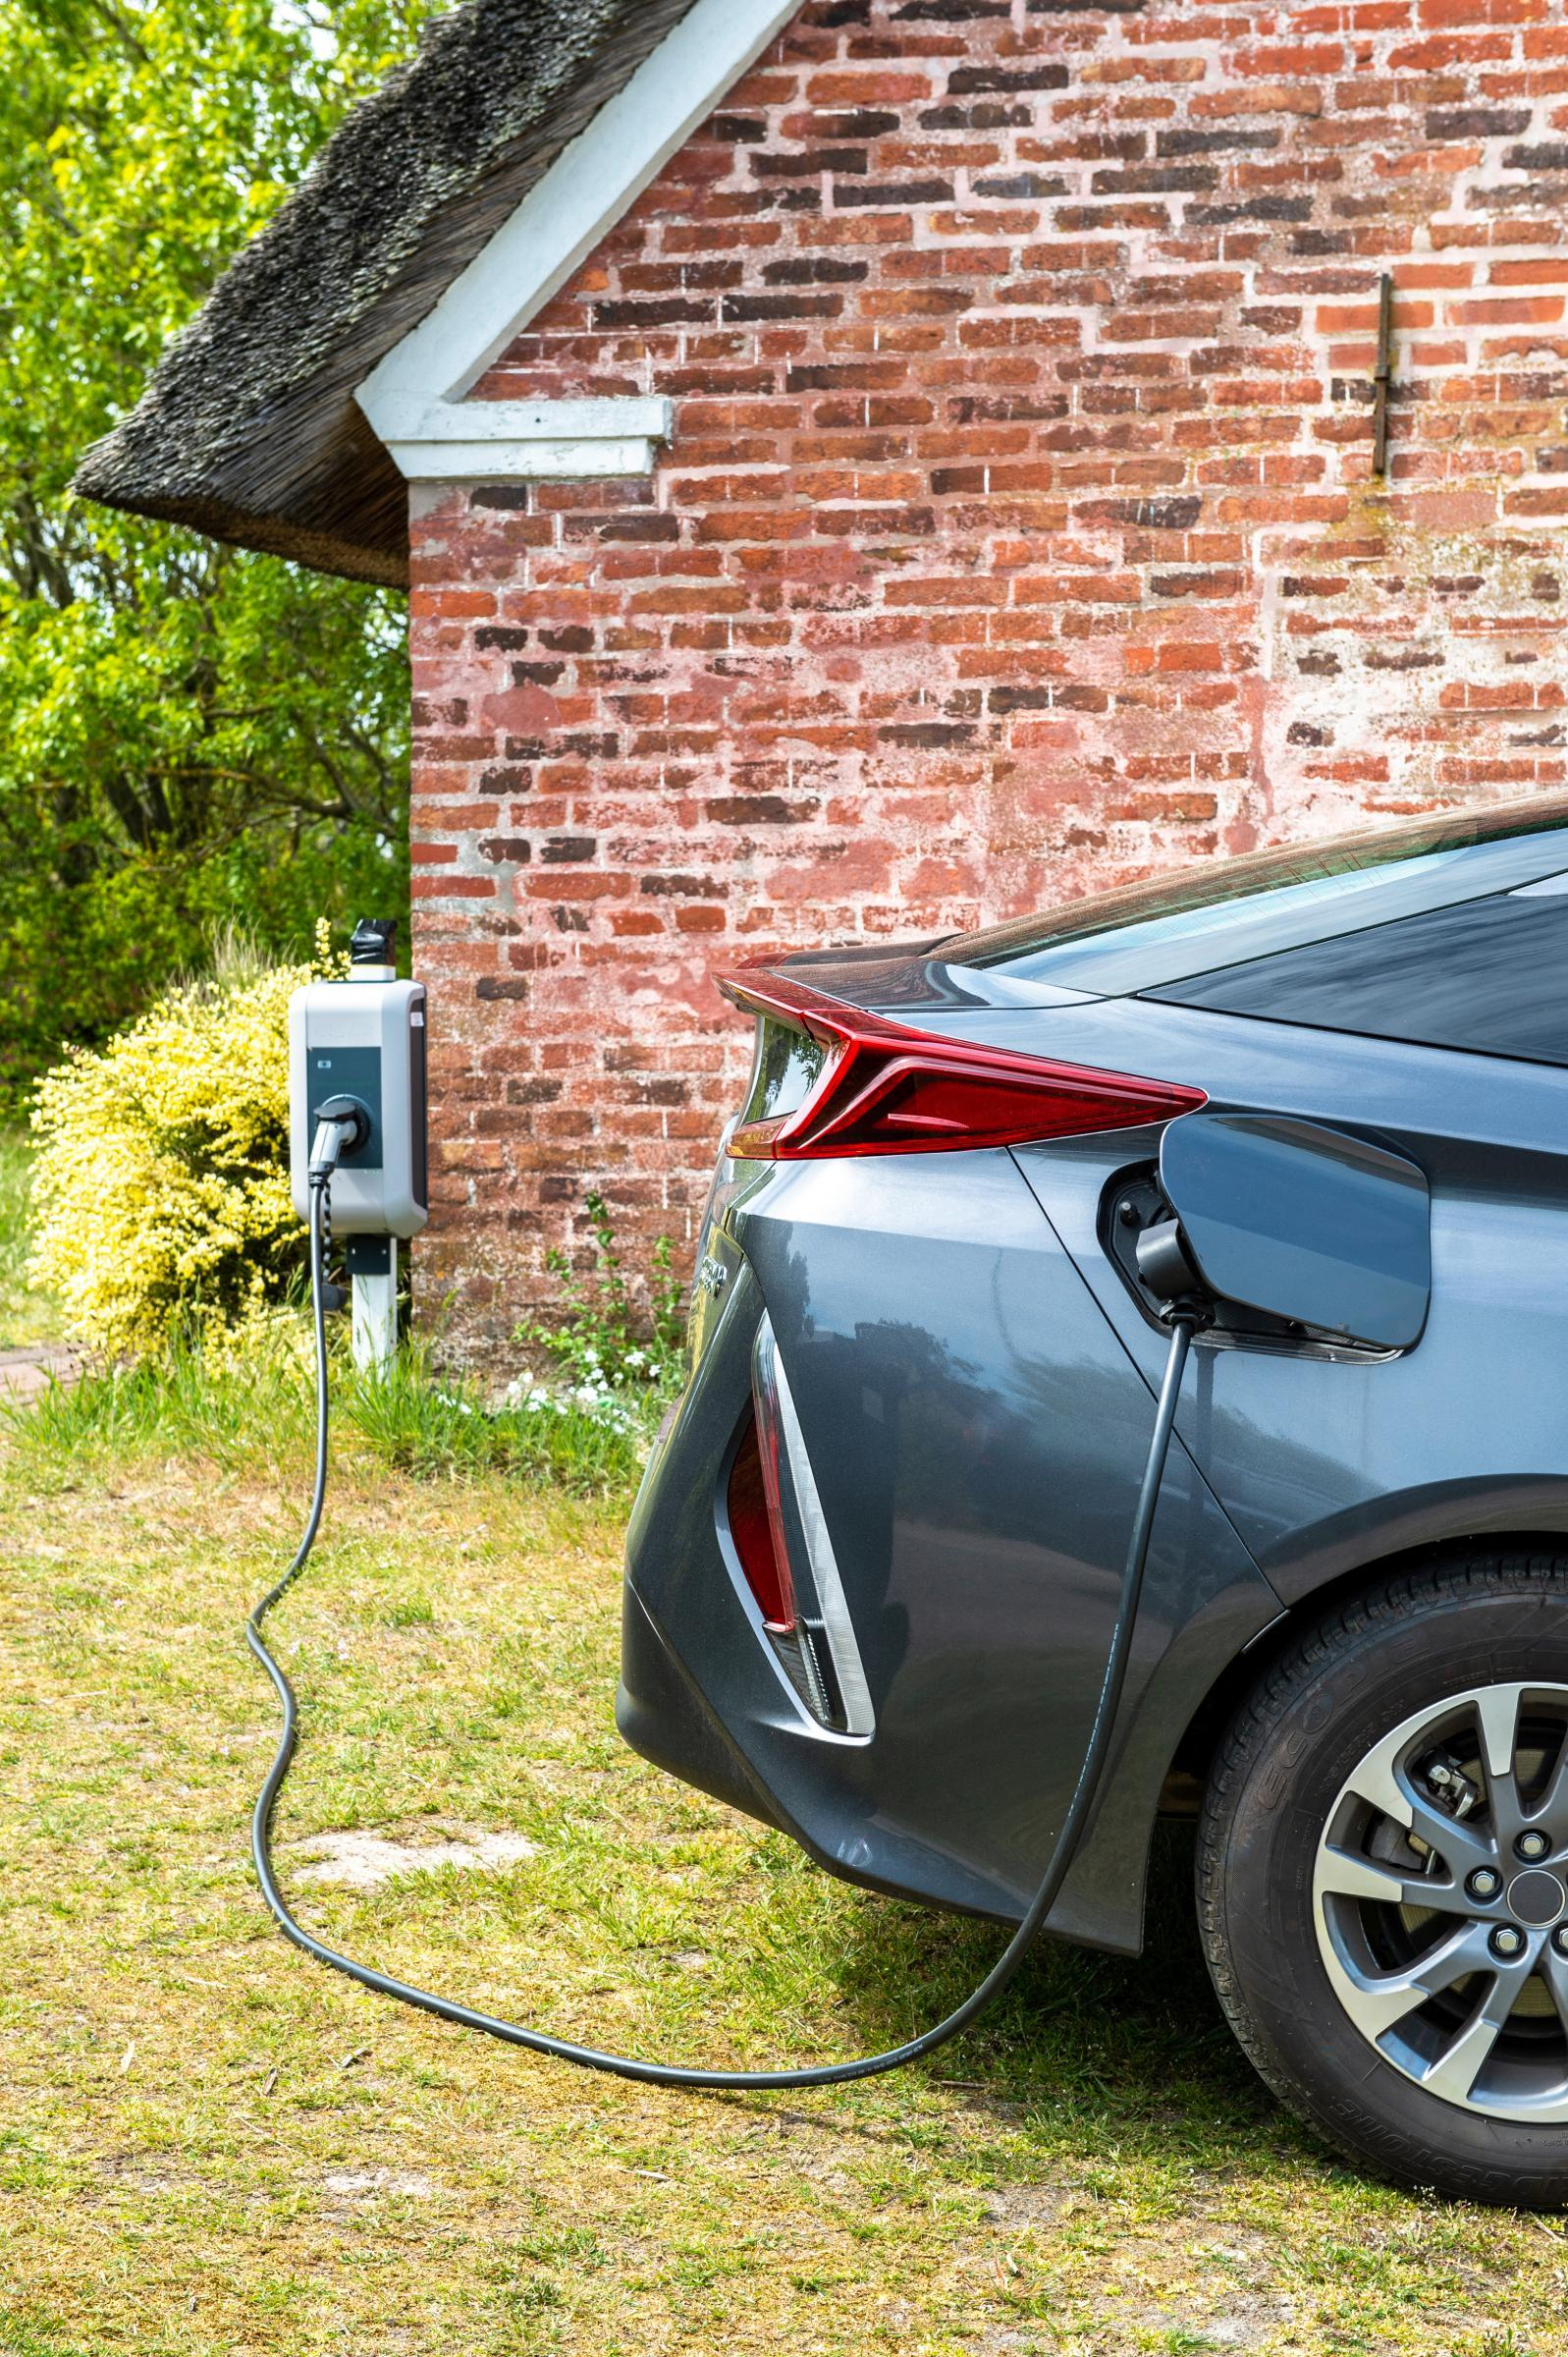 electric car charging in front of brick home